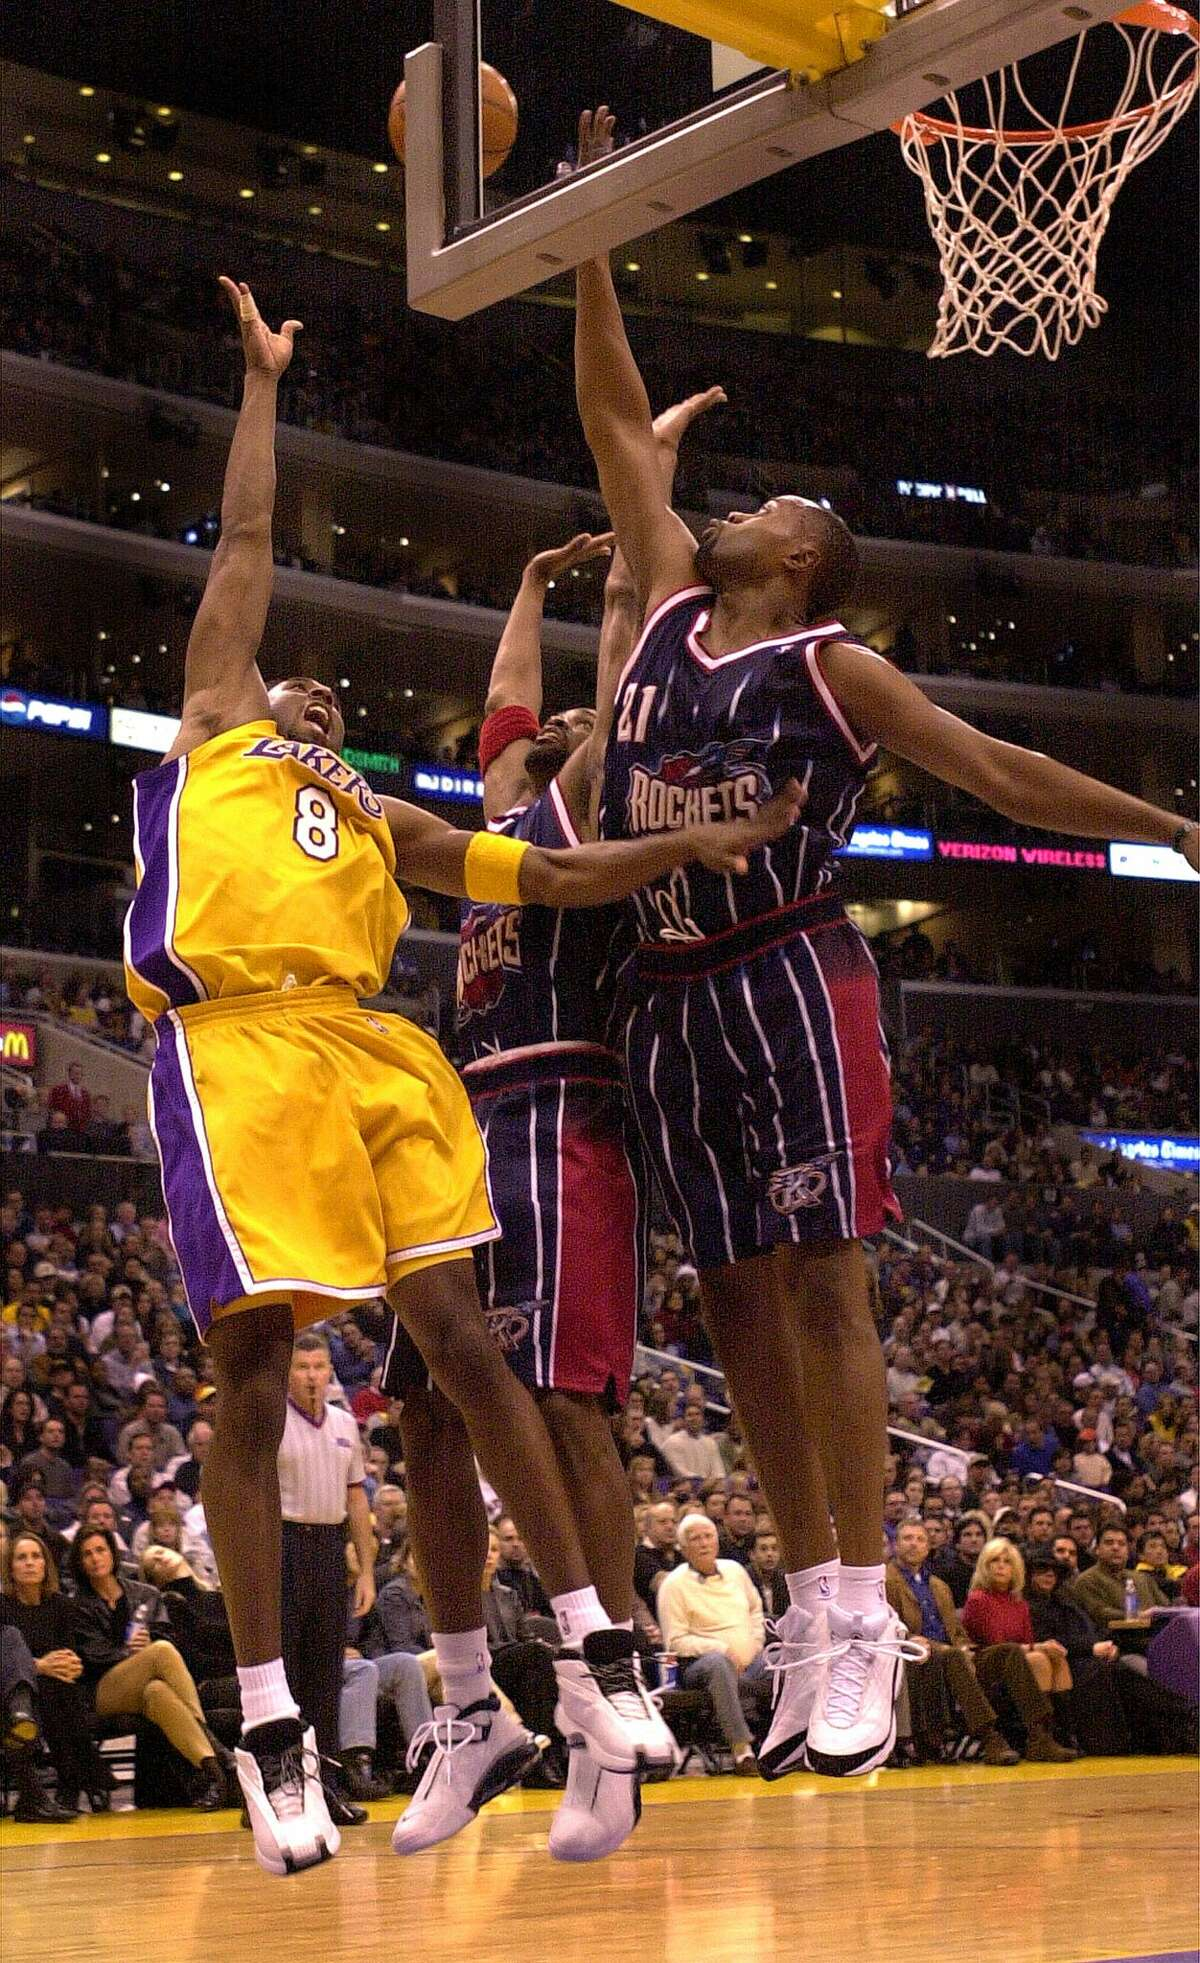 Nov. 12, 2000: Lakers 105, Rocket 99 In the middle of the Lakers' three-peat, the Rockets held Shaquille O'Neal to just 14 points, but Bryant did it all with 37 points, 10 rebounds and three steals.